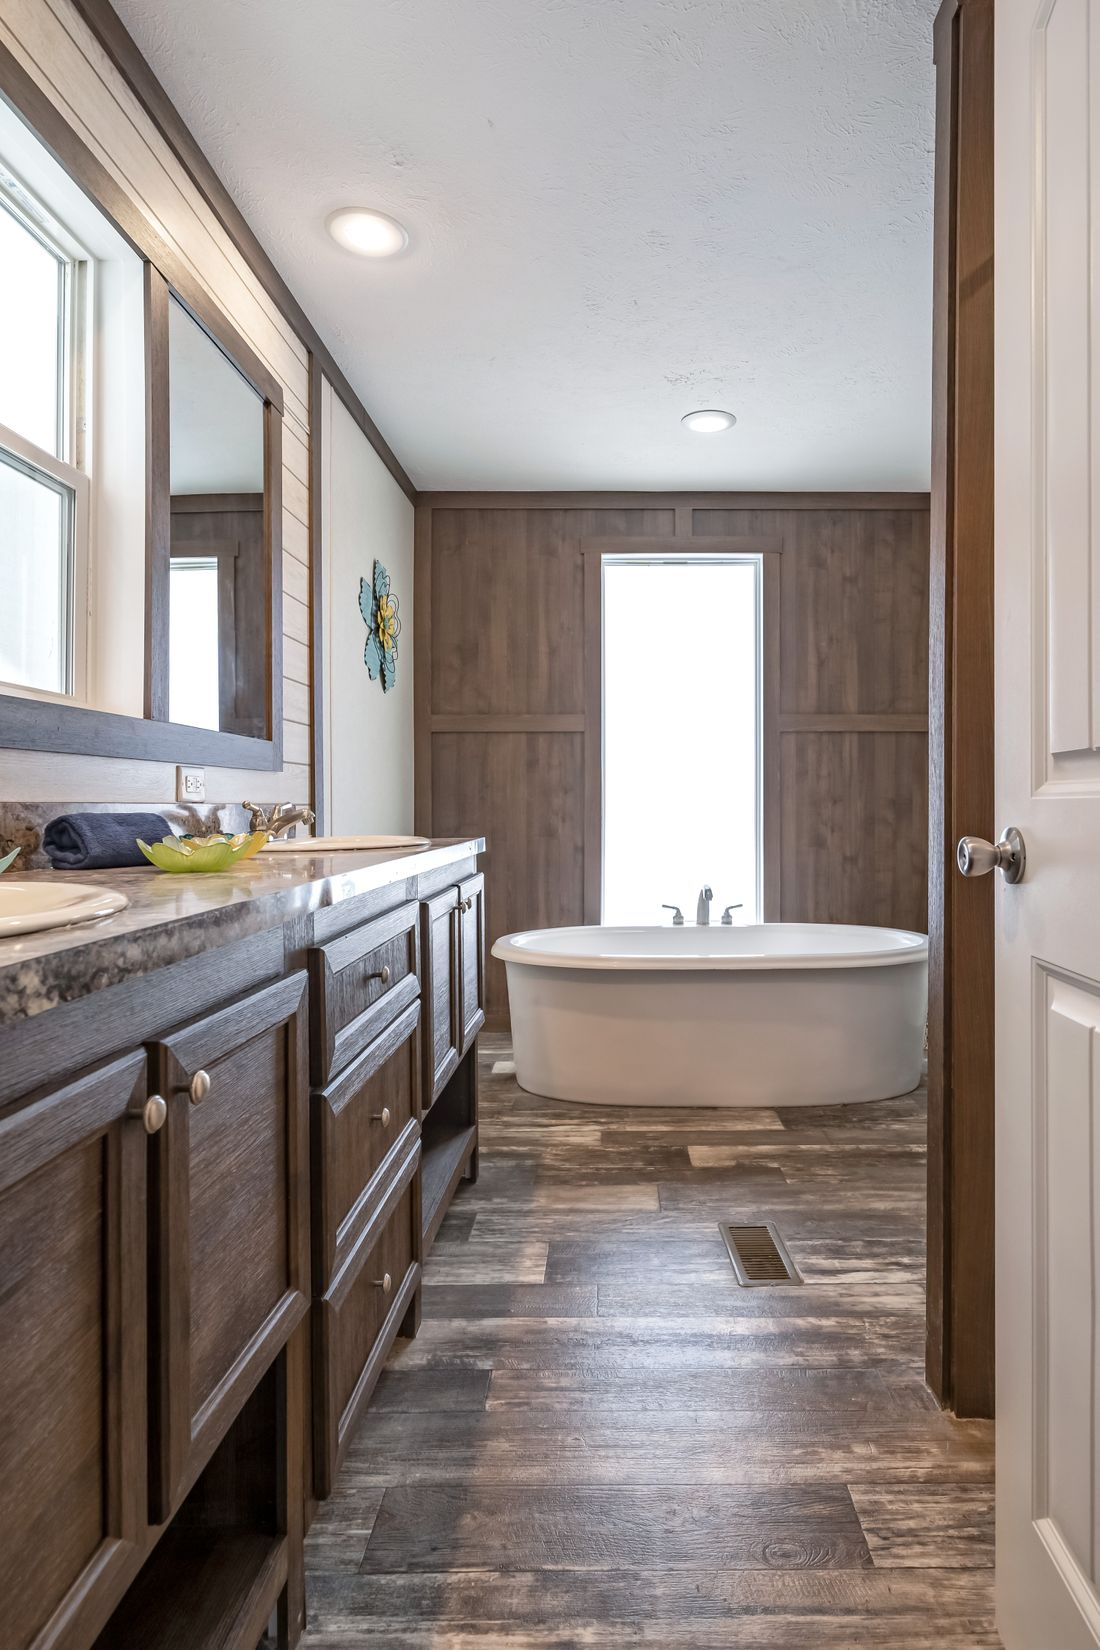 The THE RICHMOND Master Bathroom. This Manufactured Mobile Home features 3 bedrooms and 2 baths.